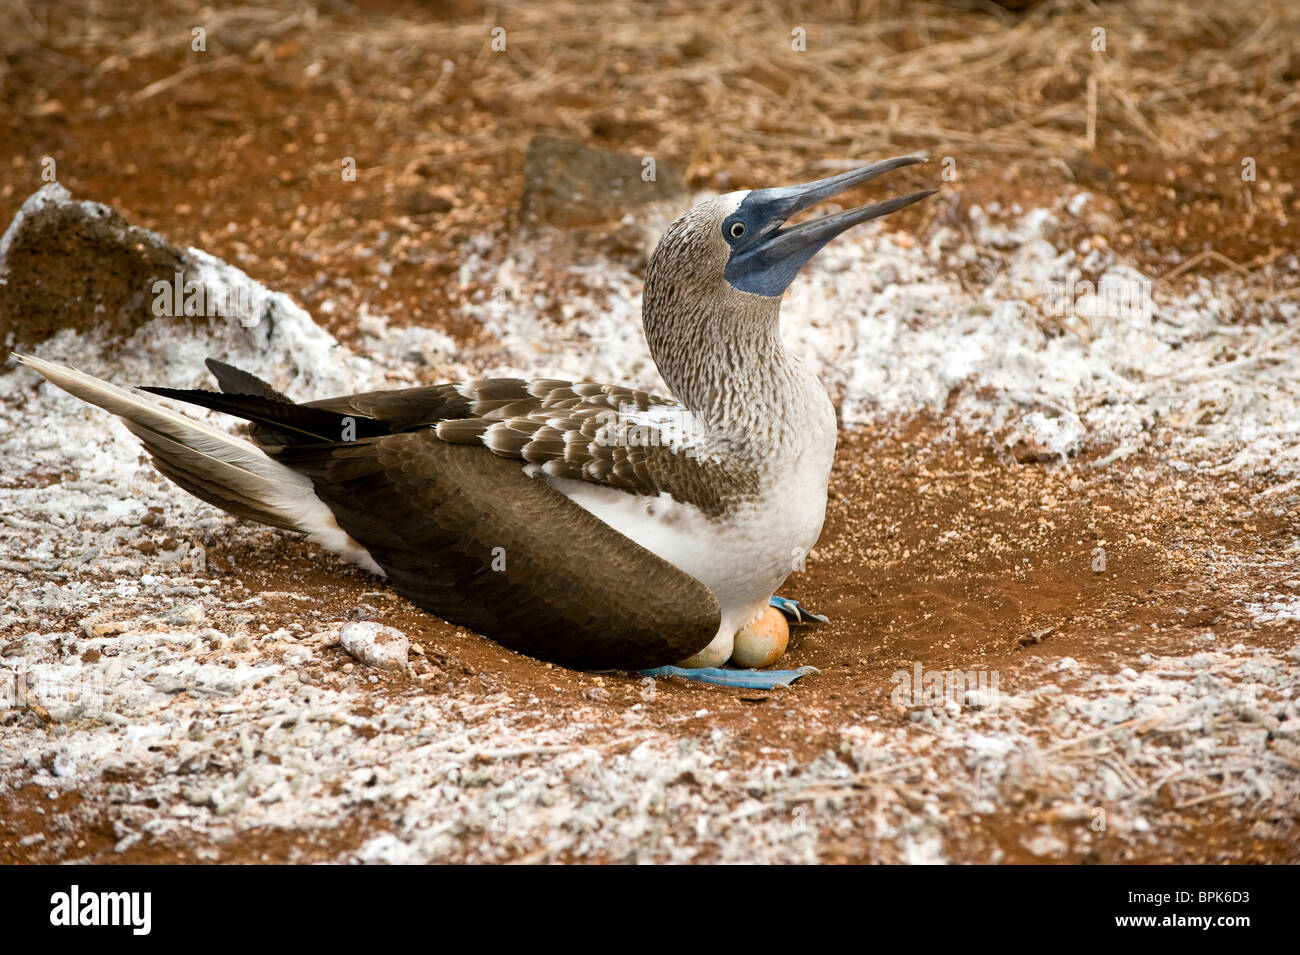 South America, Ecuador, Galapagos Islands, Blue-footed Booby, incubating eggs at nest on North Seymour Island - Stock Image